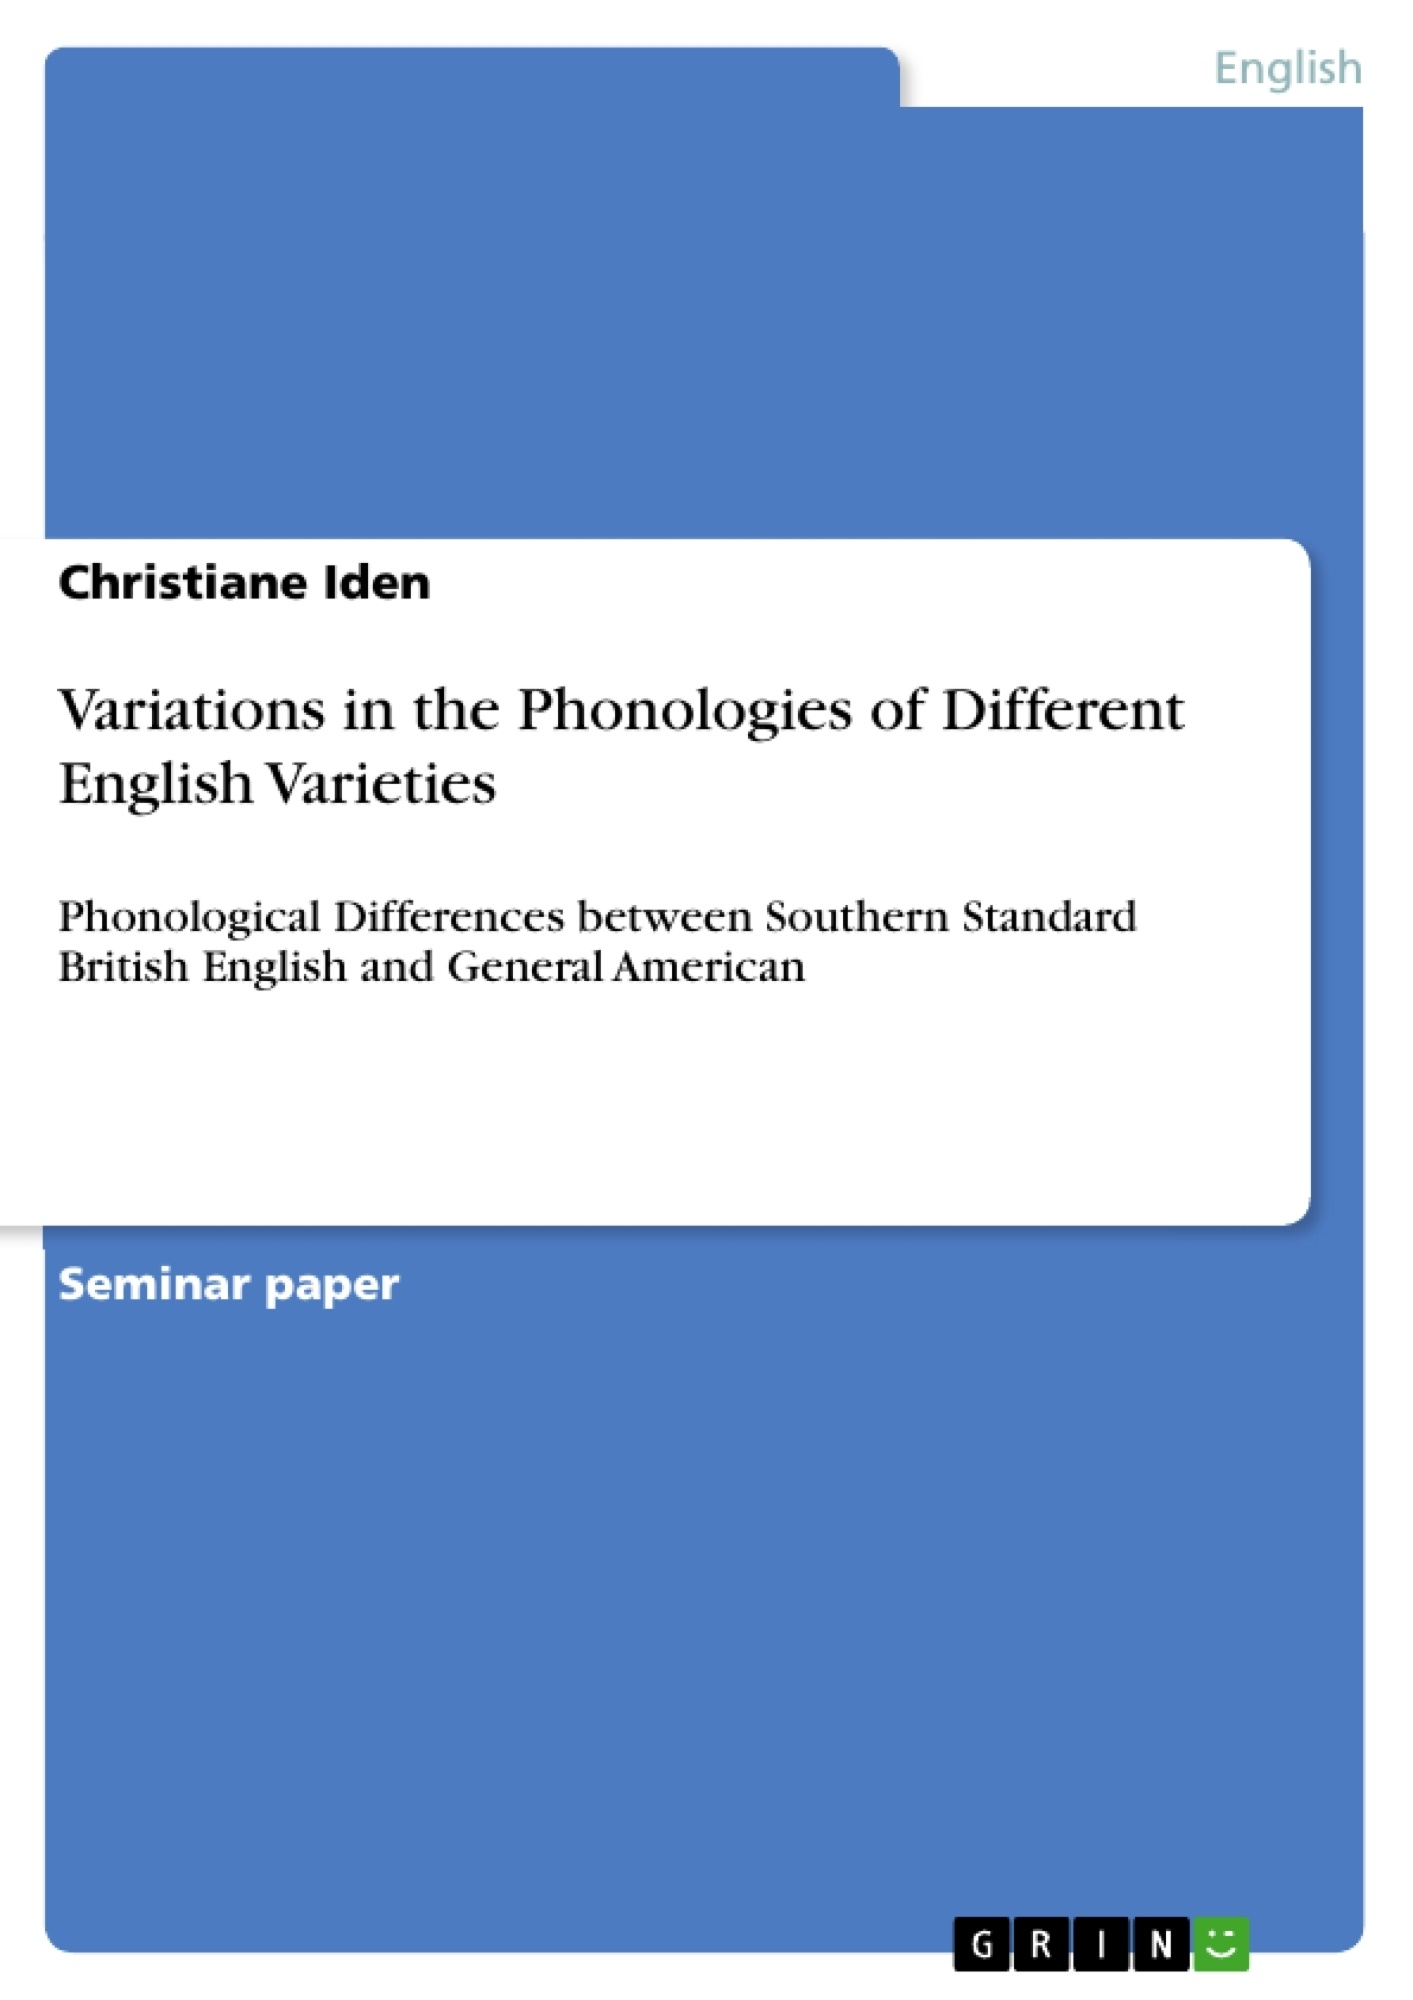 Title: Variations in the Phonologies of Different English Varieties